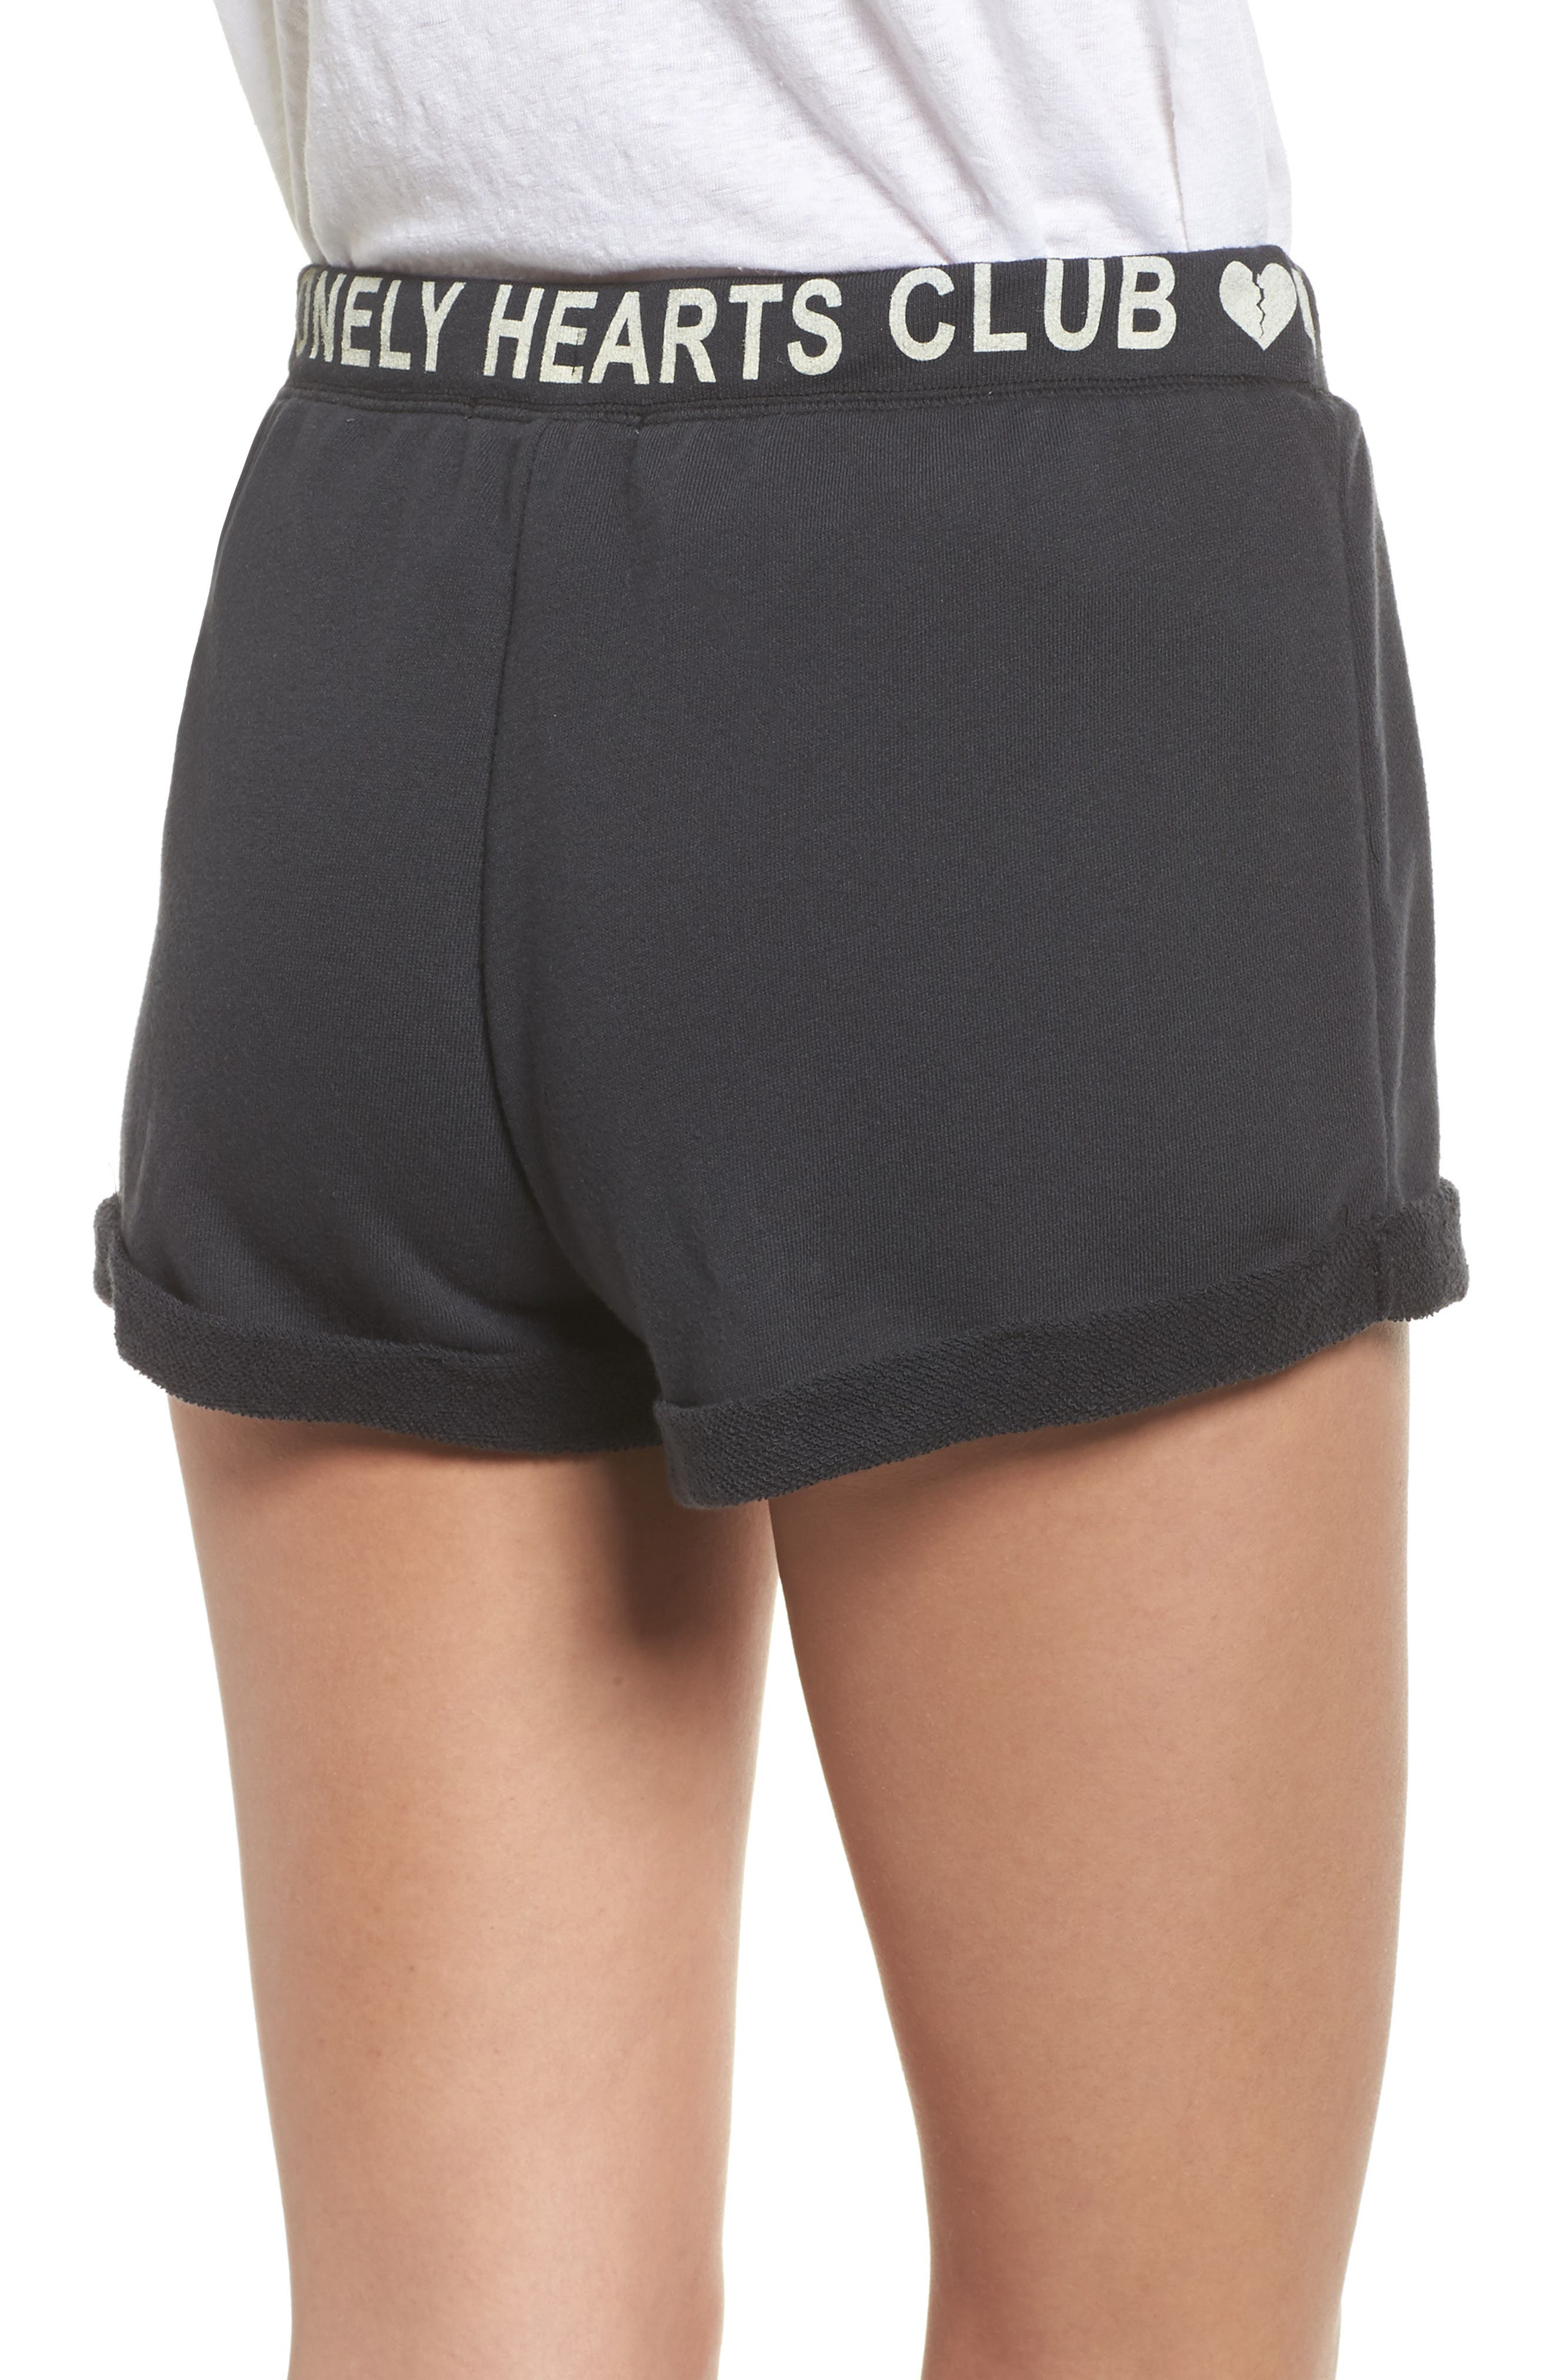 Alternate Image 2  - Junk Food Lonely Hearts Club Lounge Shorts (Nordstrom Exclusive)